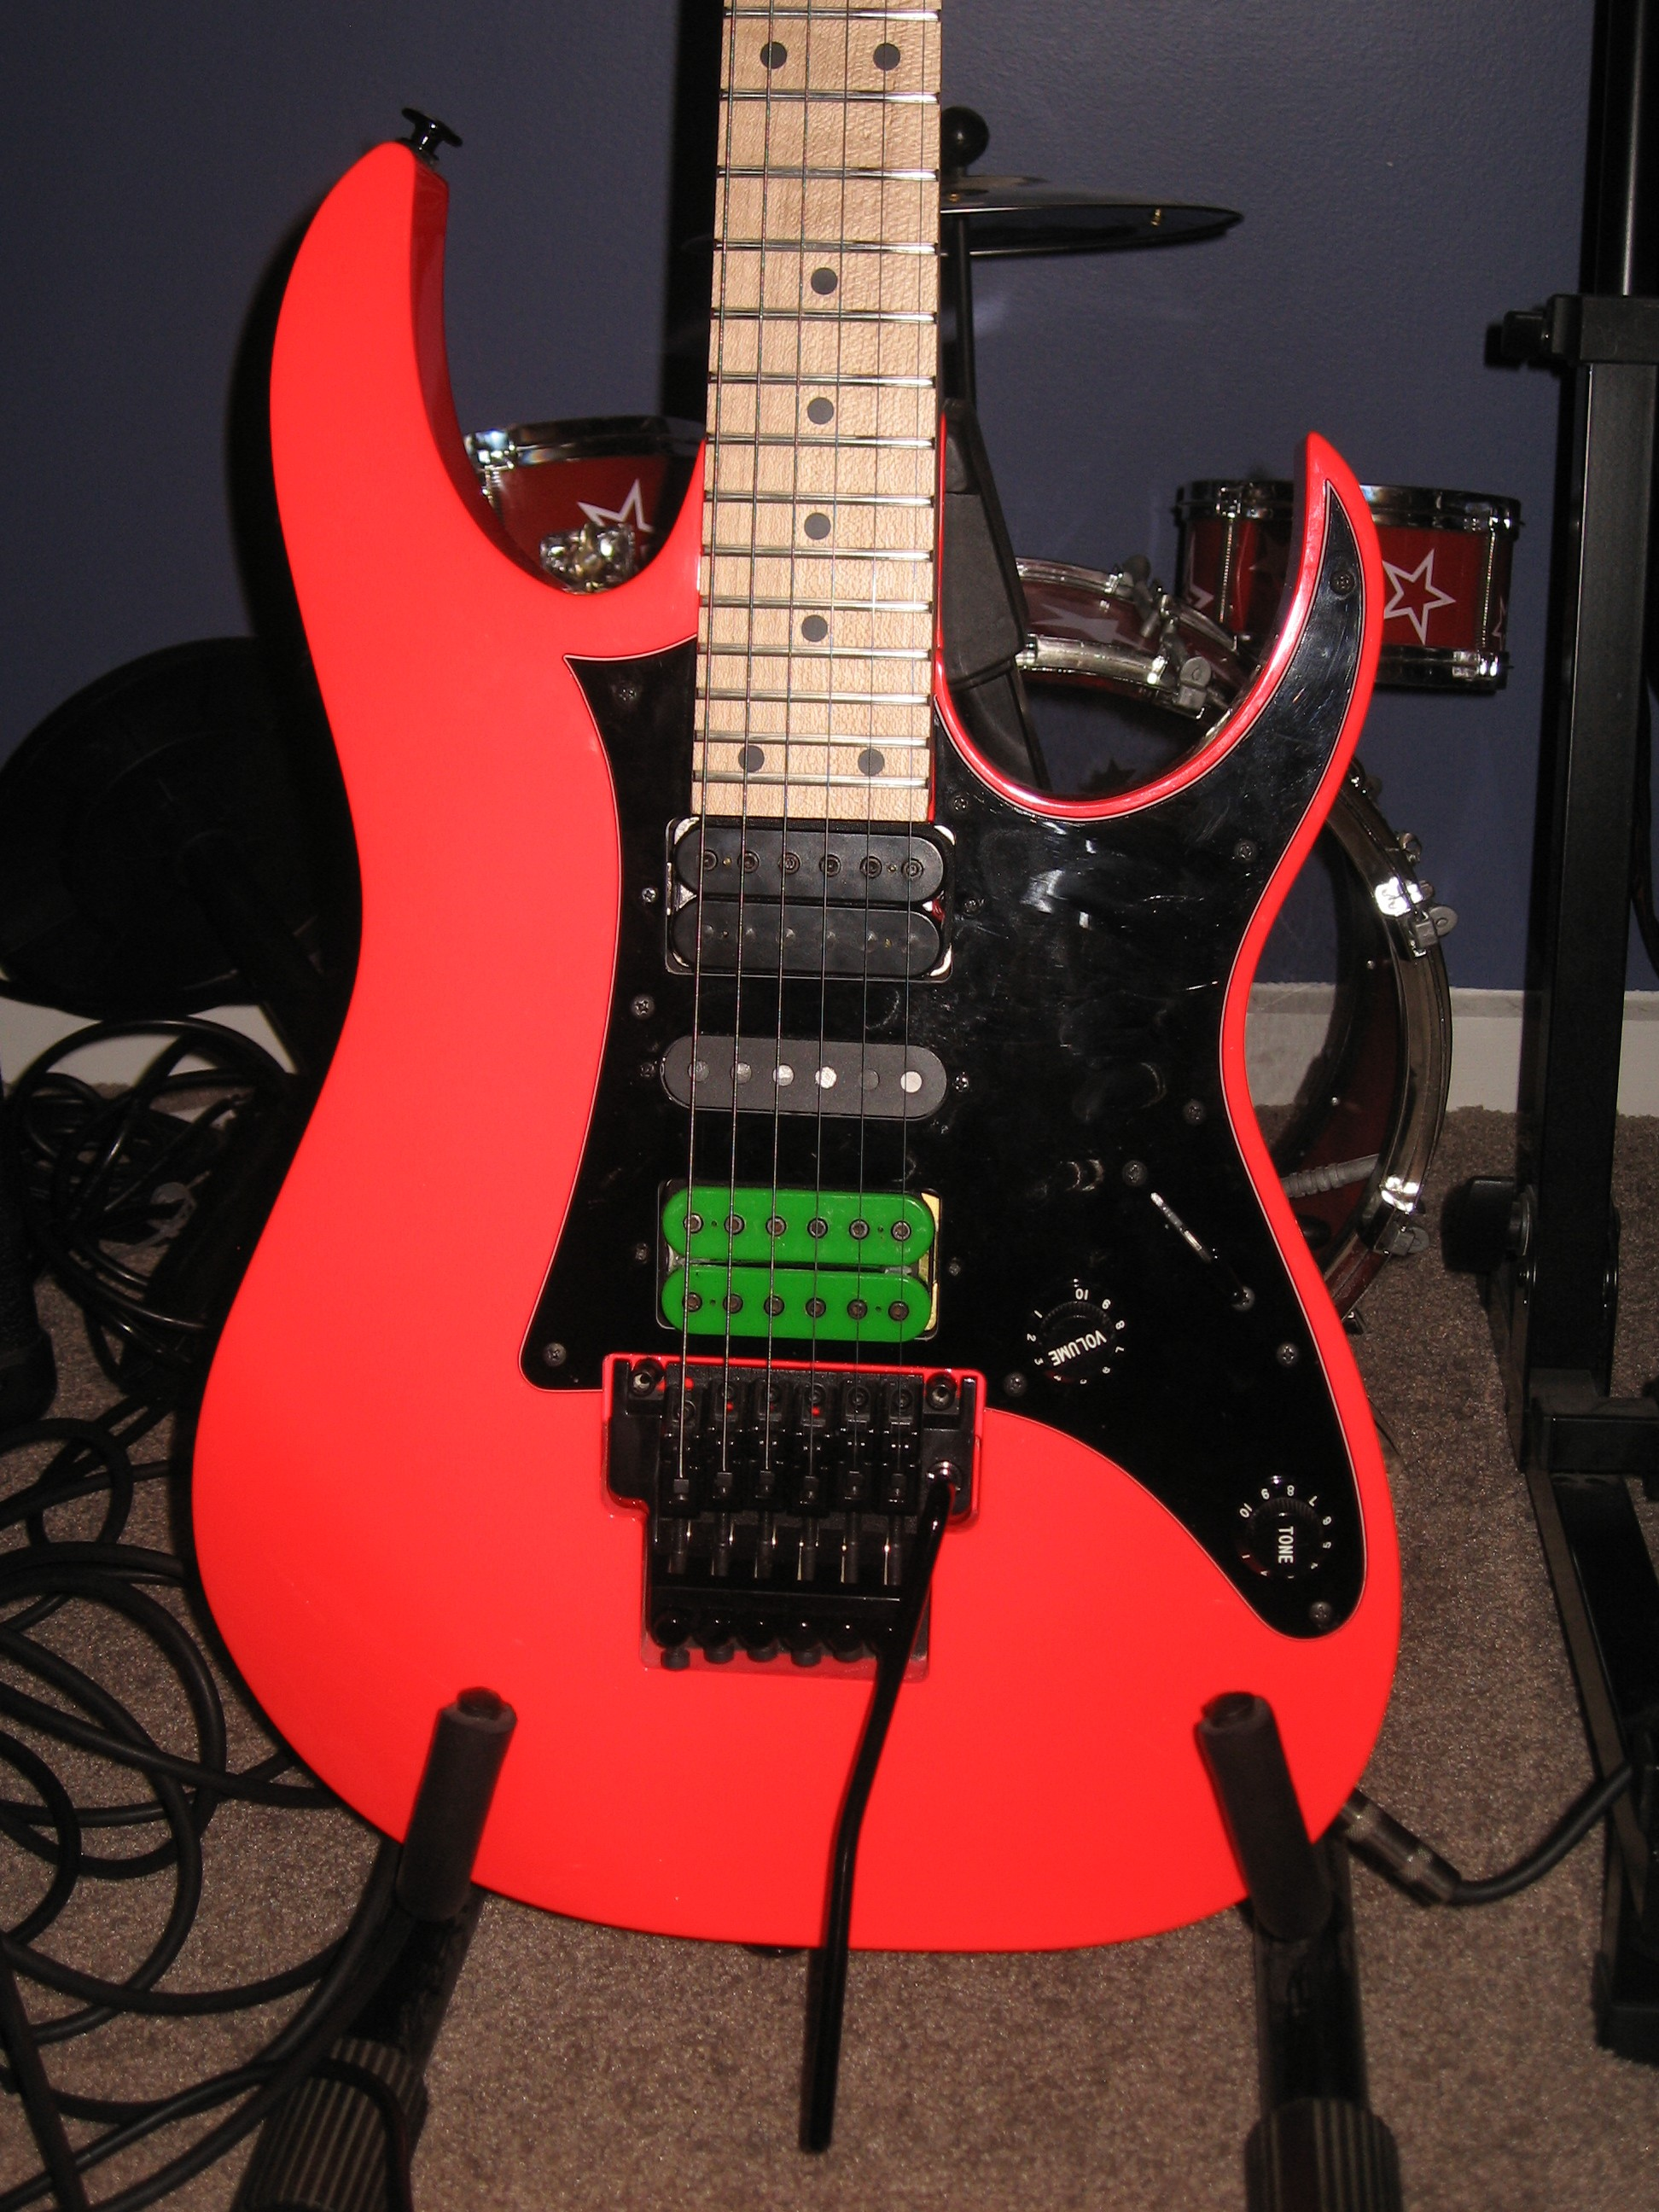 Ibanez RG550 20th Anniversary Reissue with DiMarzio PAF Pro installe